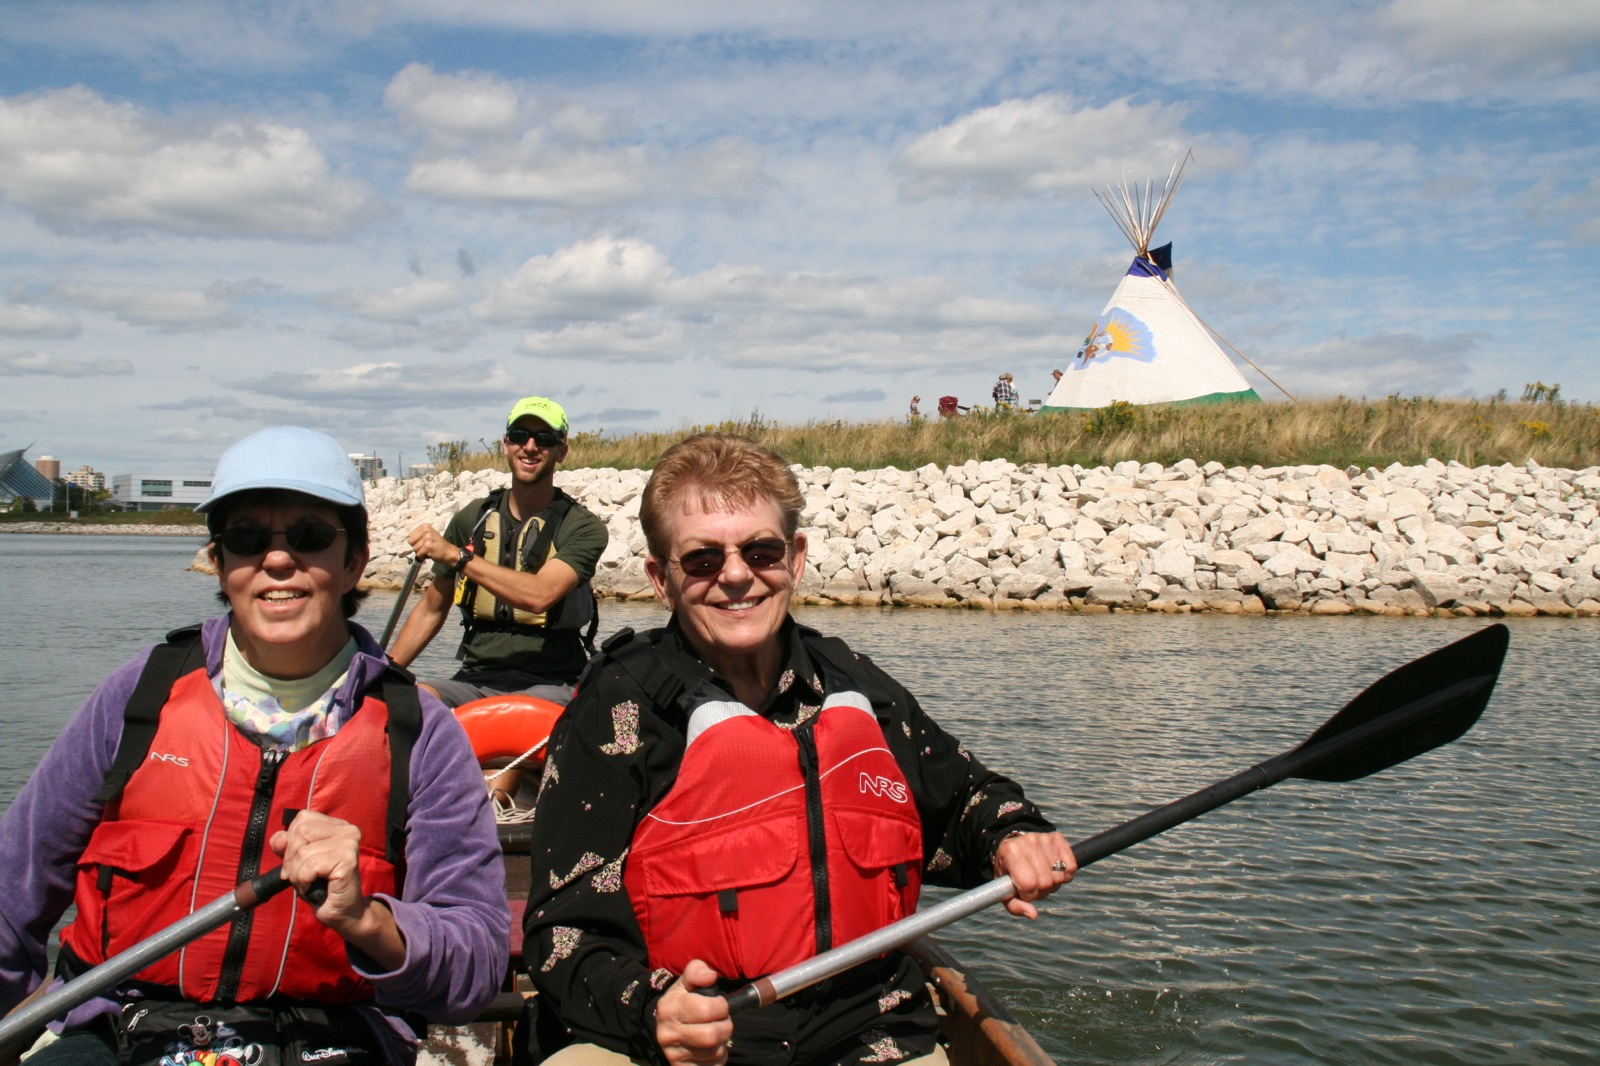 two women smiling as they paddle along the river there is a tepee along the shore in the background